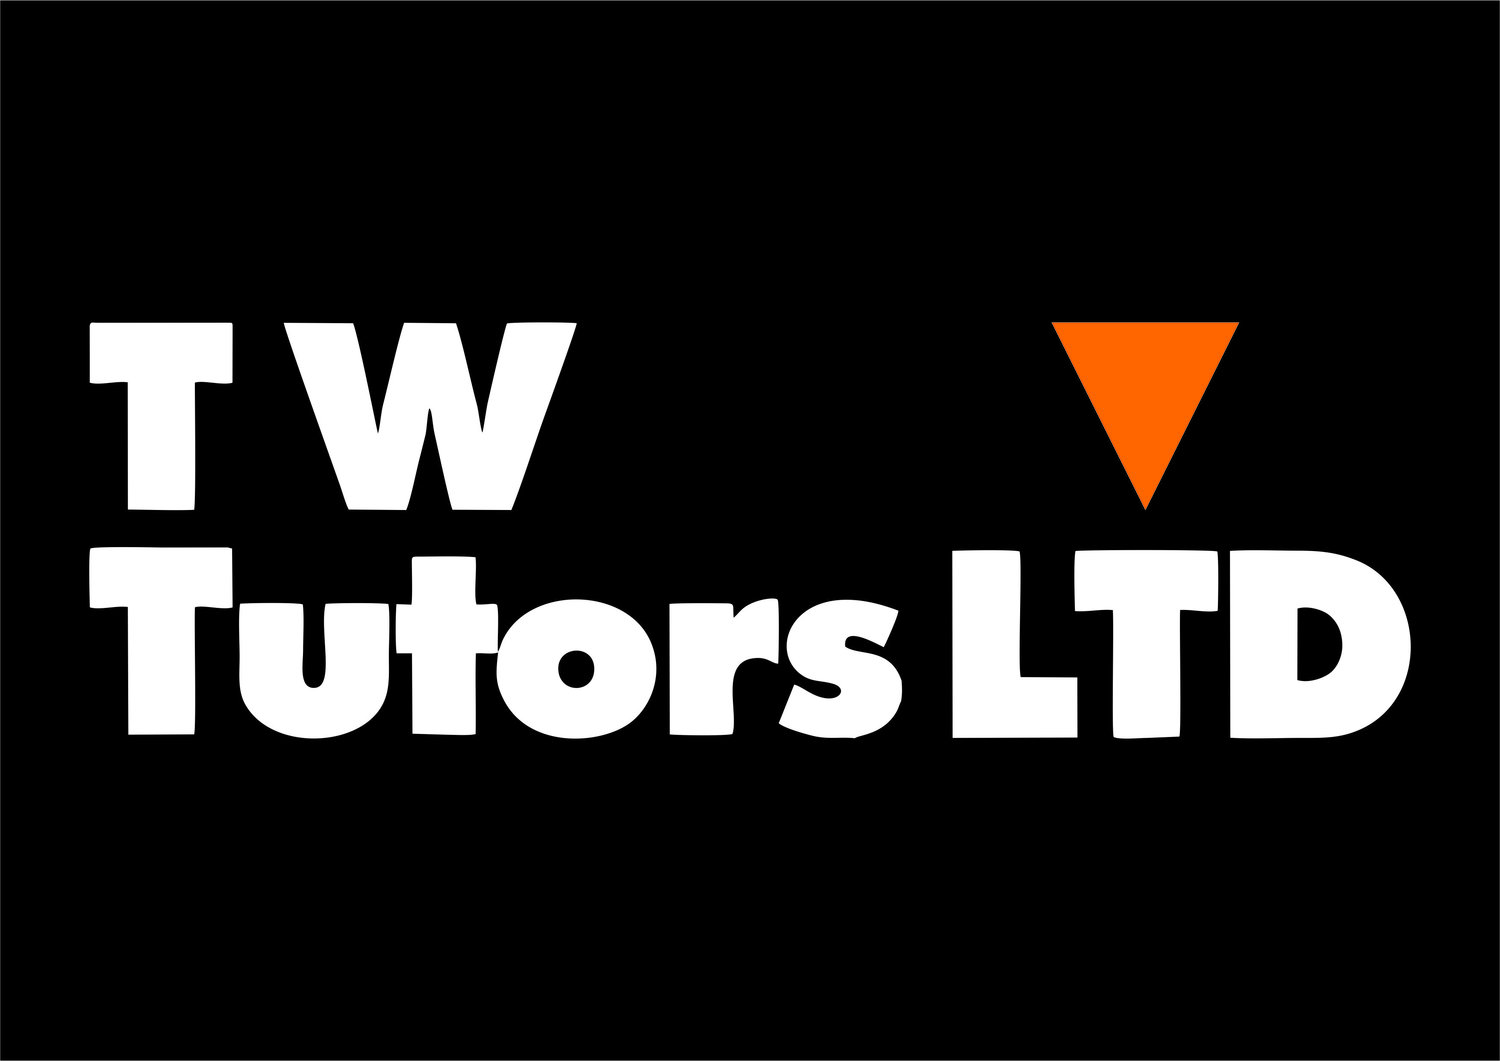 T W Tutors LTD